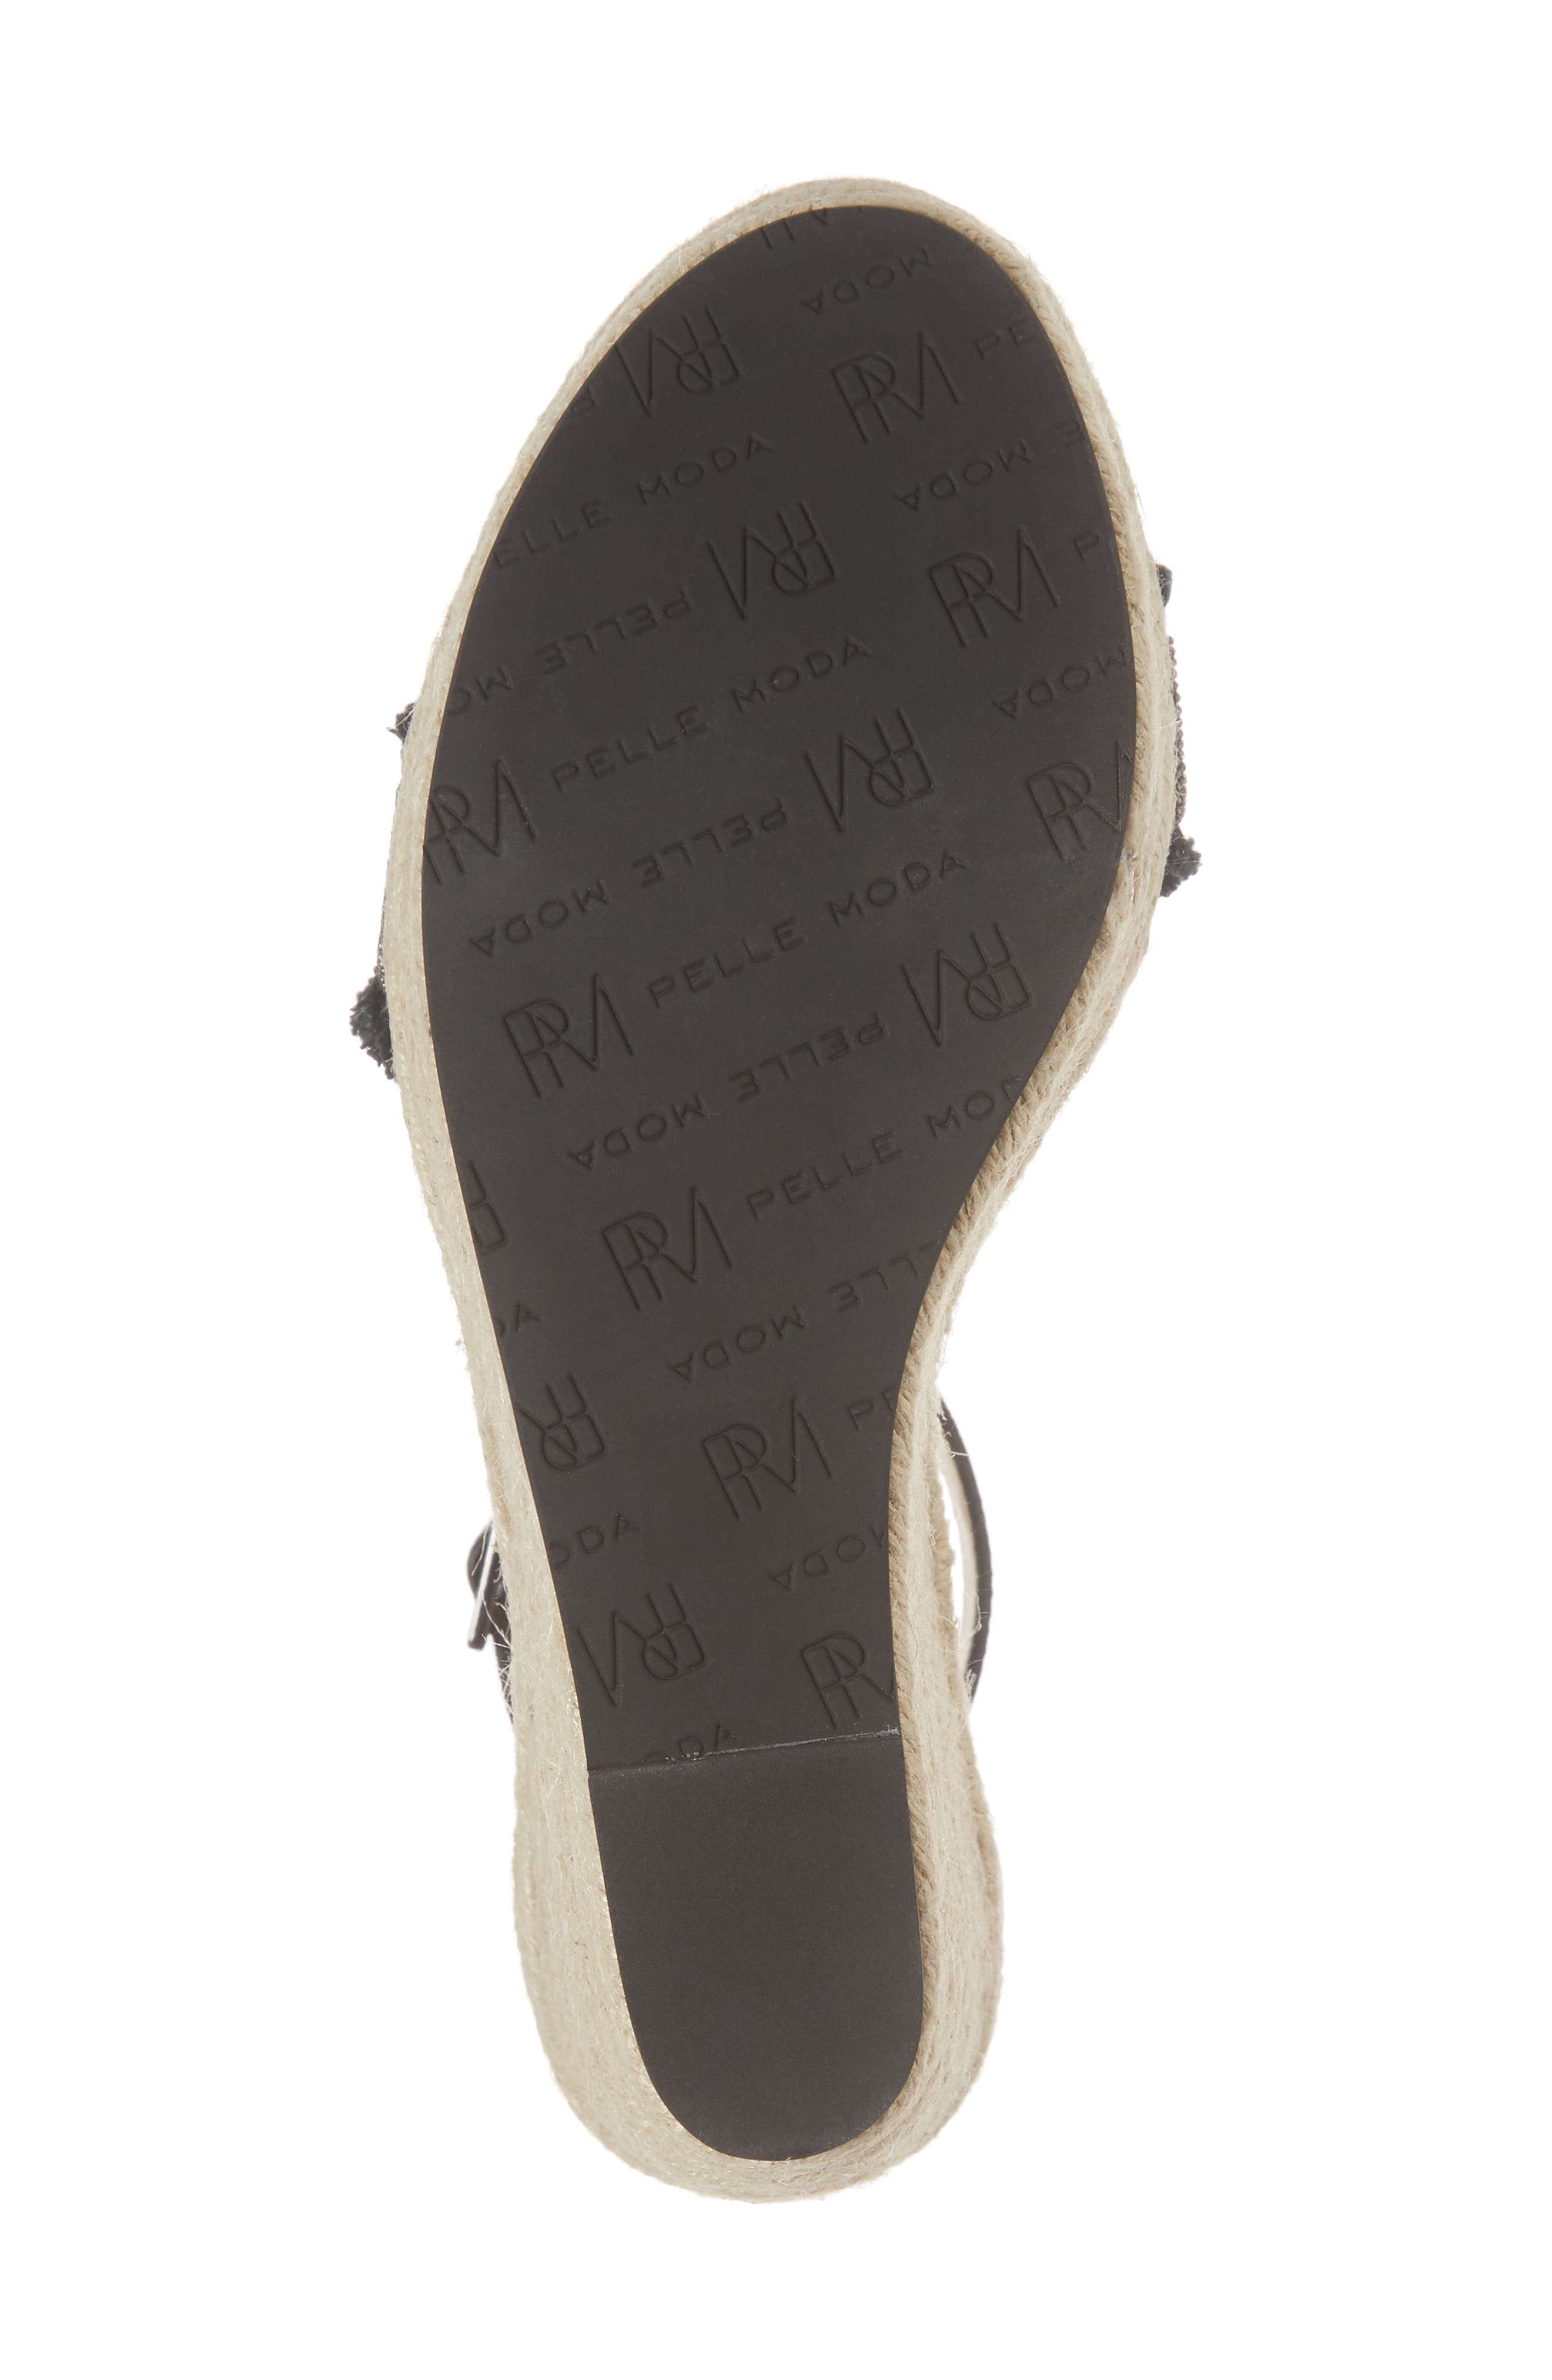 Radley Espadrille Wedge Sandal,                             Alternate thumbnail 6, color,                             BLACK LEATHER